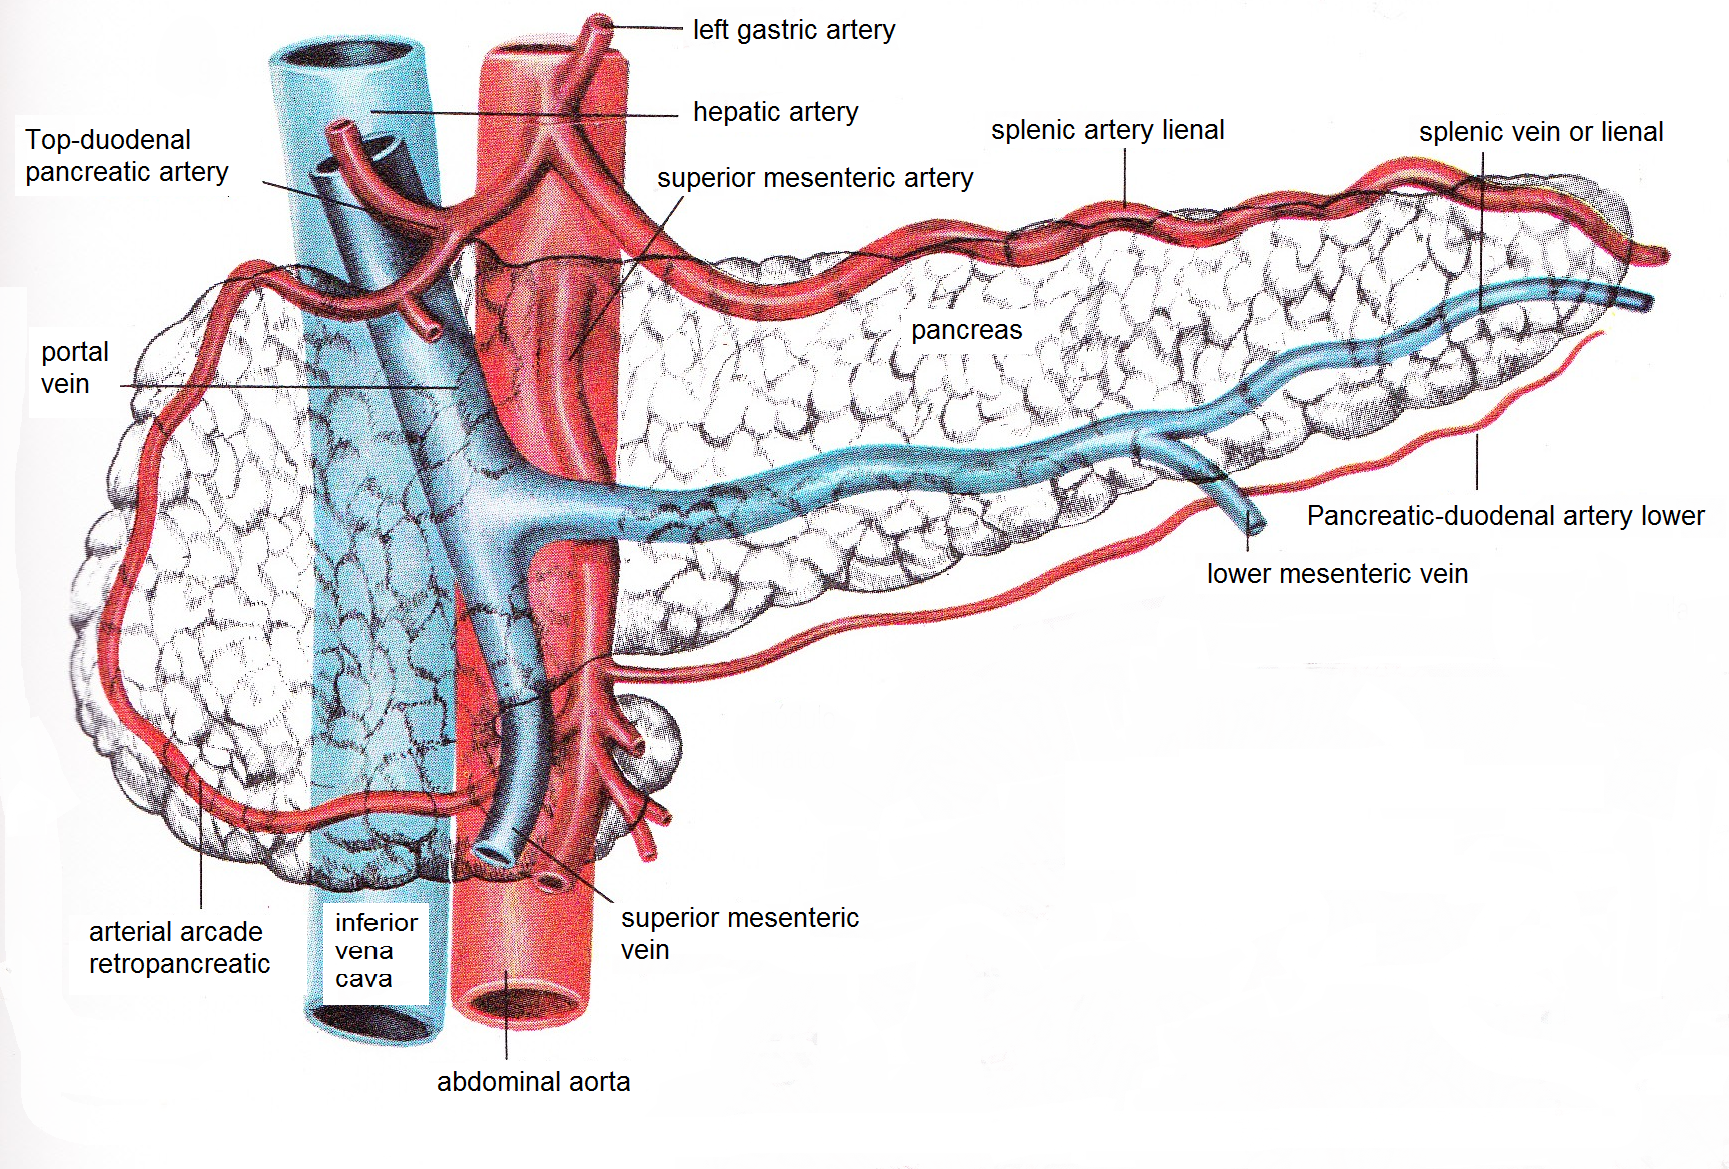 Pancreatic Veins Arteries And Head To The Portal Vein And